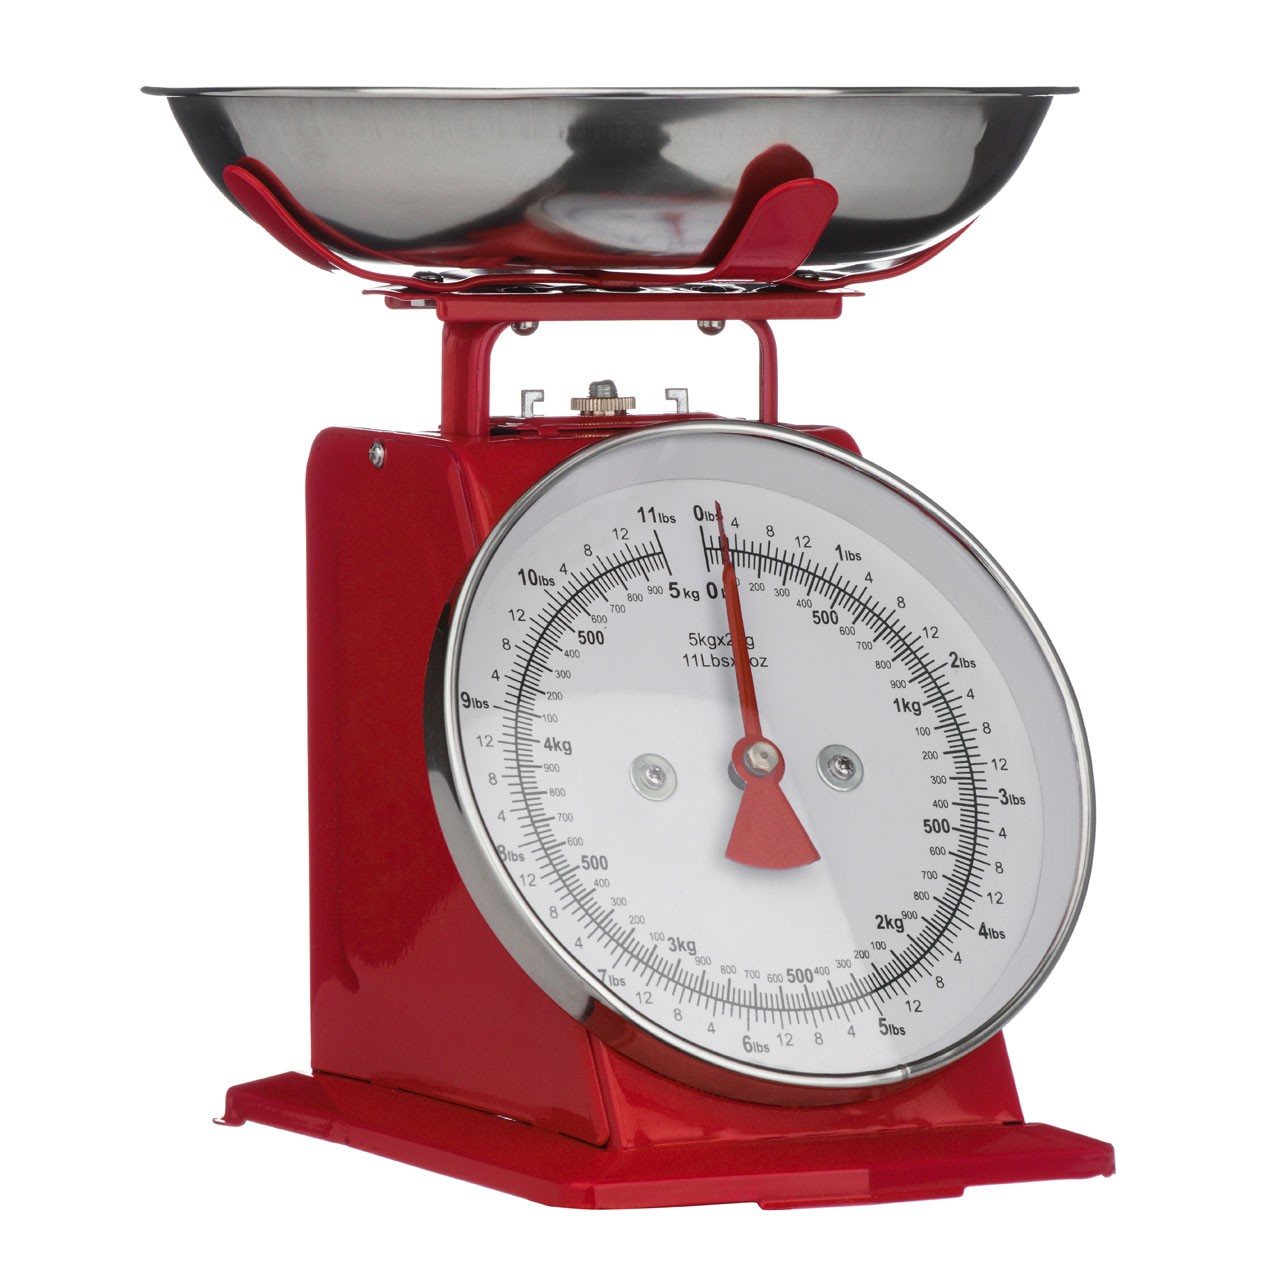 5 Kg Kitchen Scale Retro Style - Red